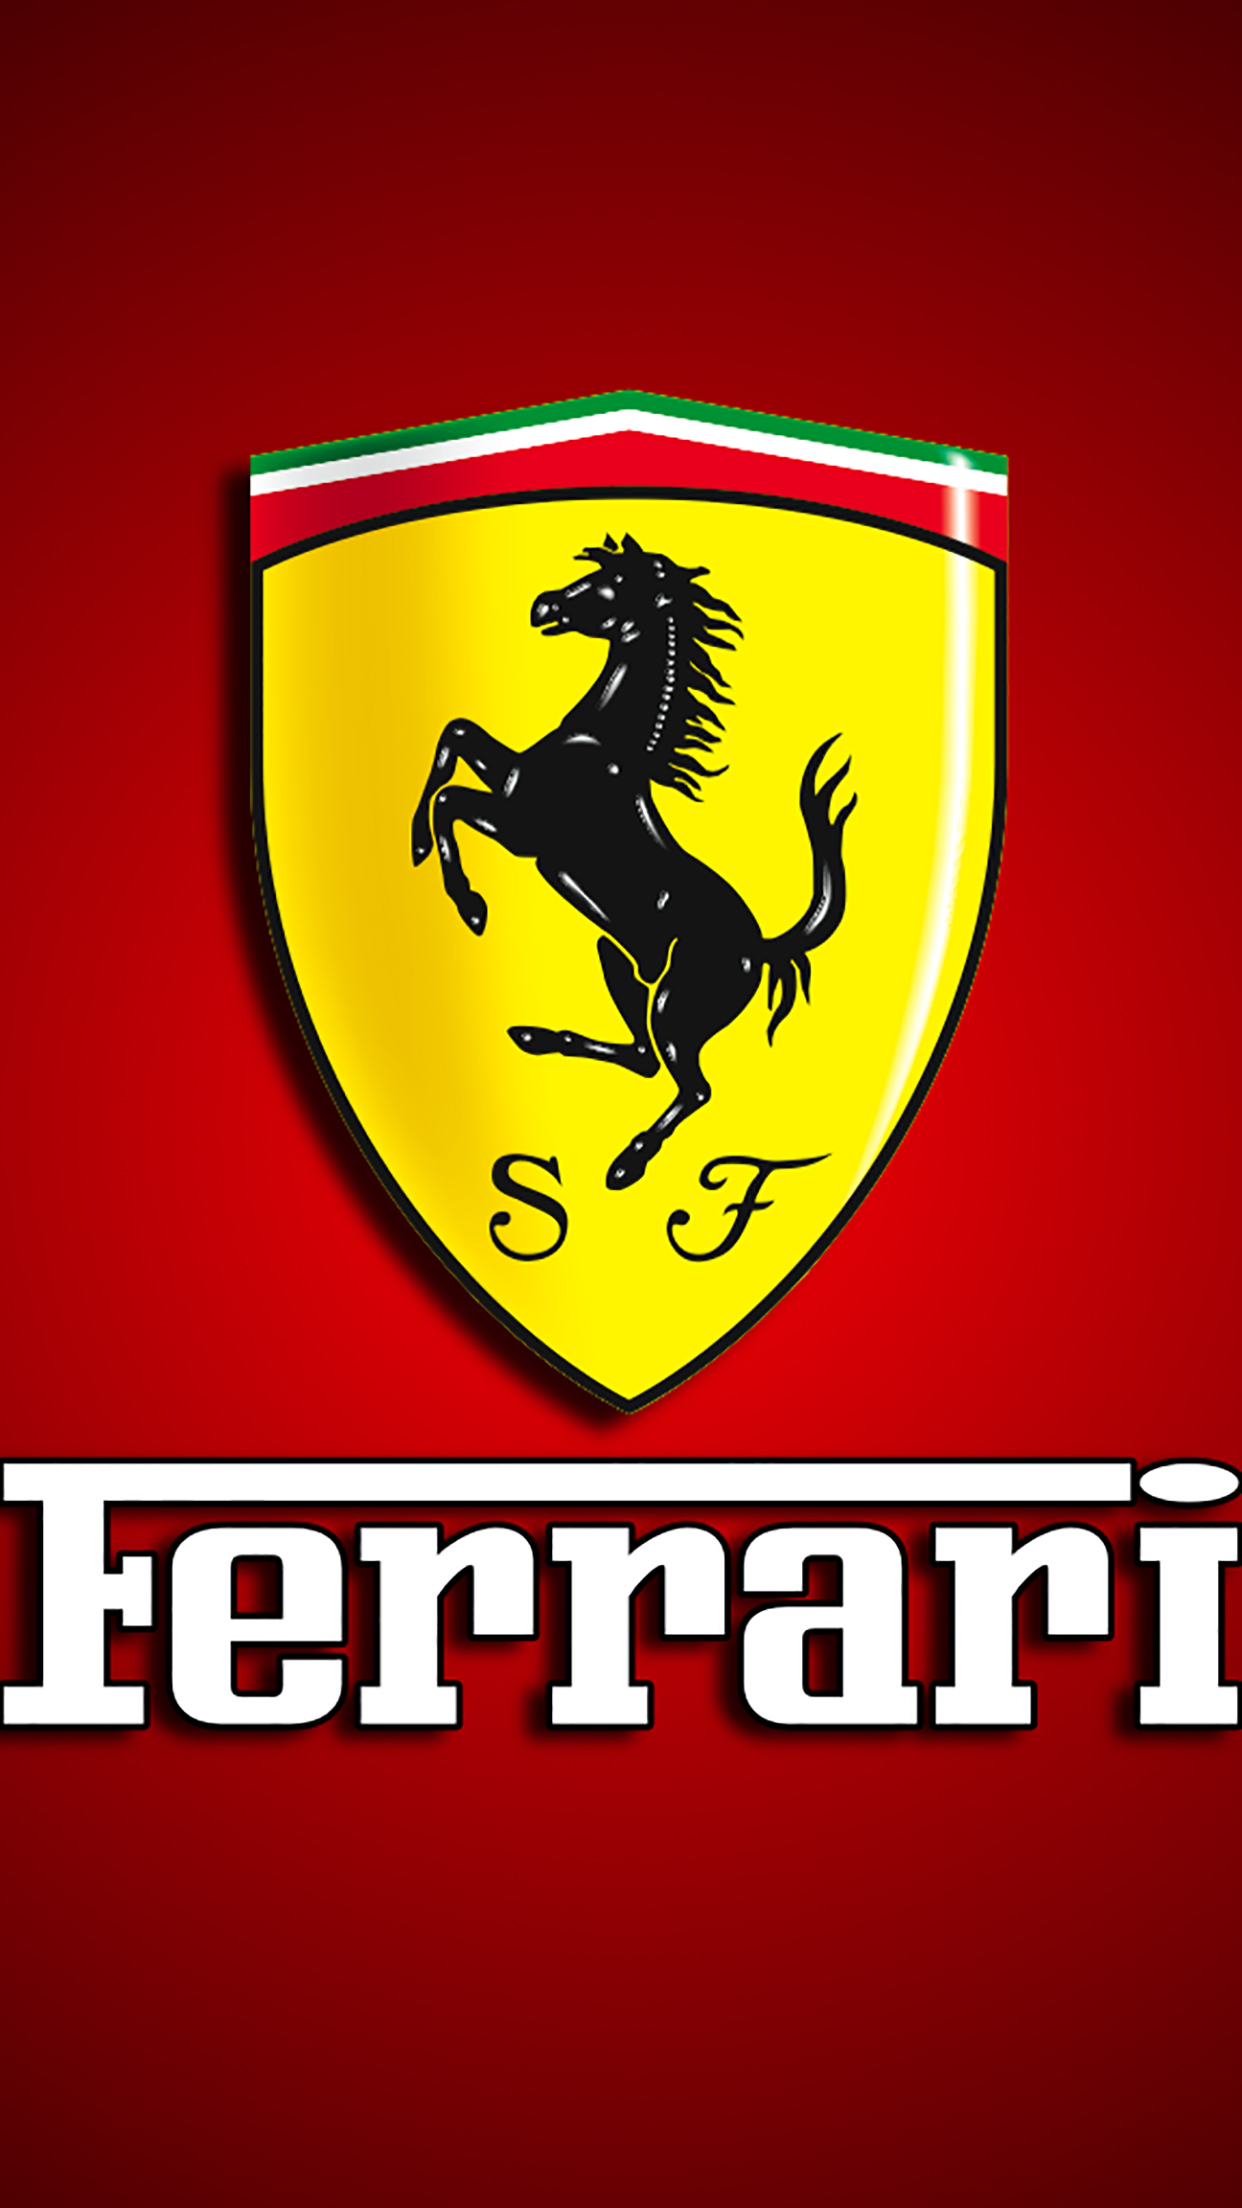 Ferrari Logo 3Wallpapers iPhone Parallax 3Wallpapers : notre sélection de fonds décran du 31/12/2016